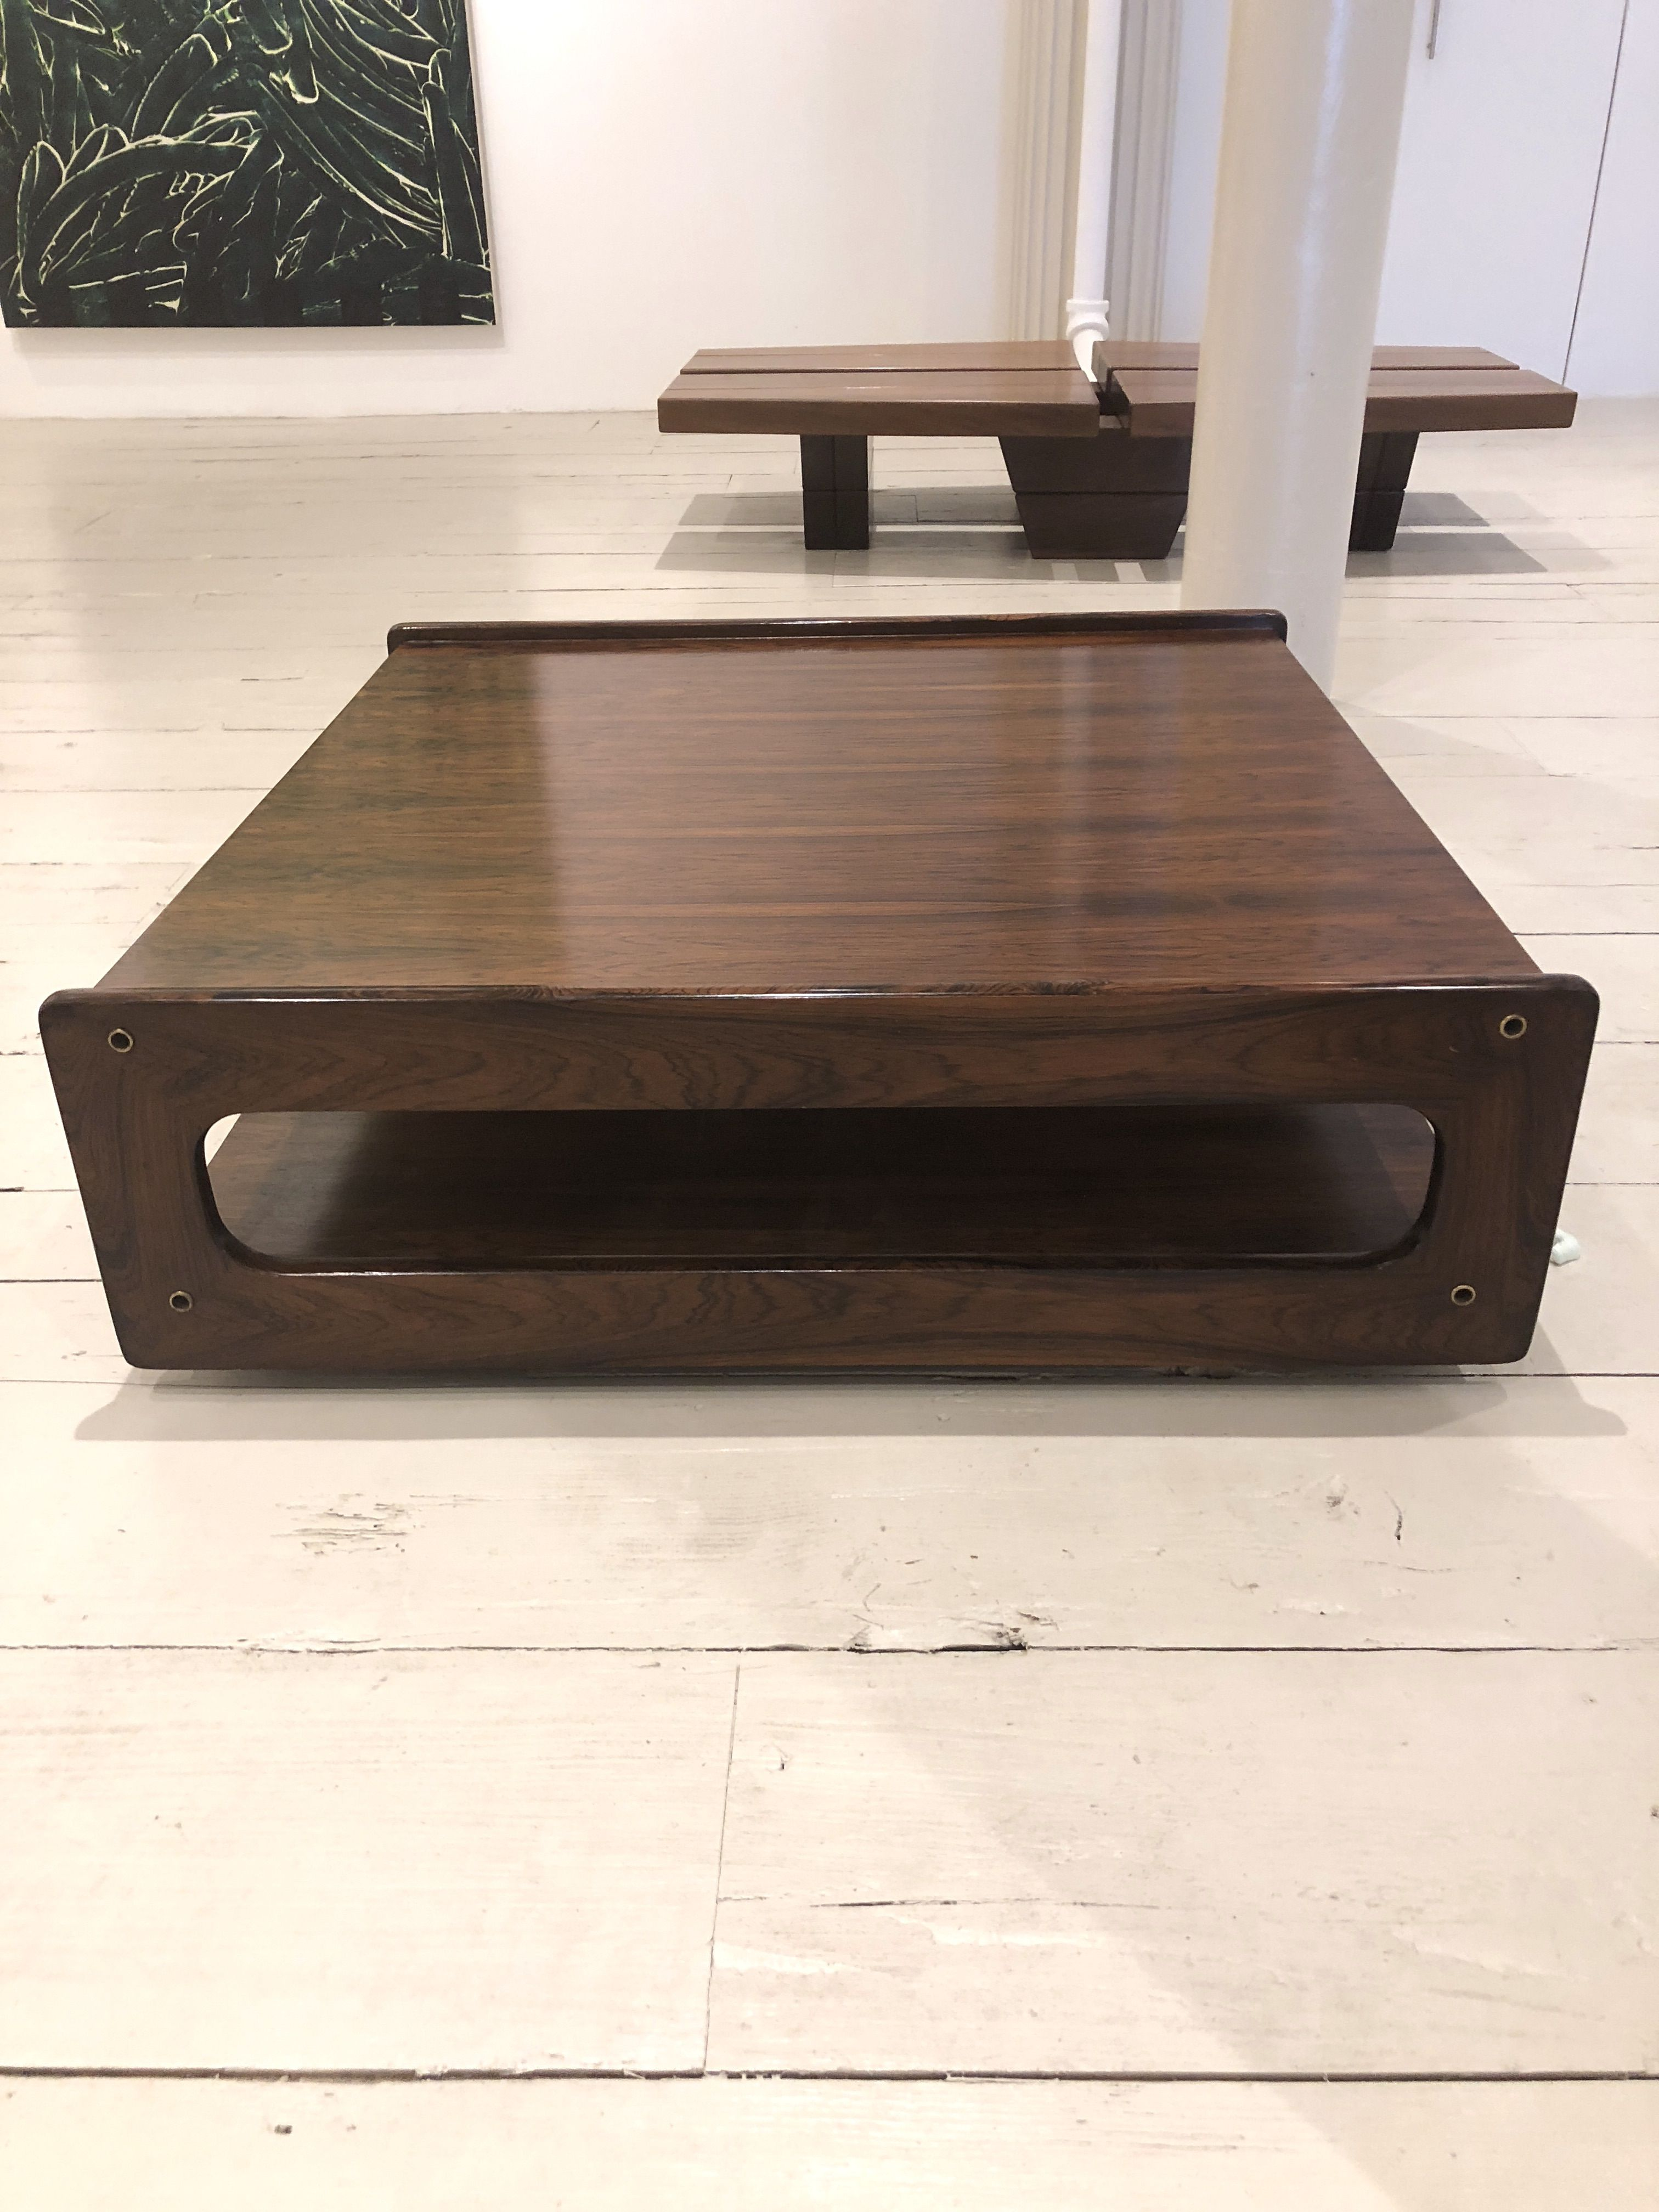 Vintage Coffee Table Designed In The 60 S Available At Espasso Midcentury Modern Brazilian Design Jacar Coffee Table Coffee Table Design Coffee Table Vintage [ 4032 x 3024 Pixel ]